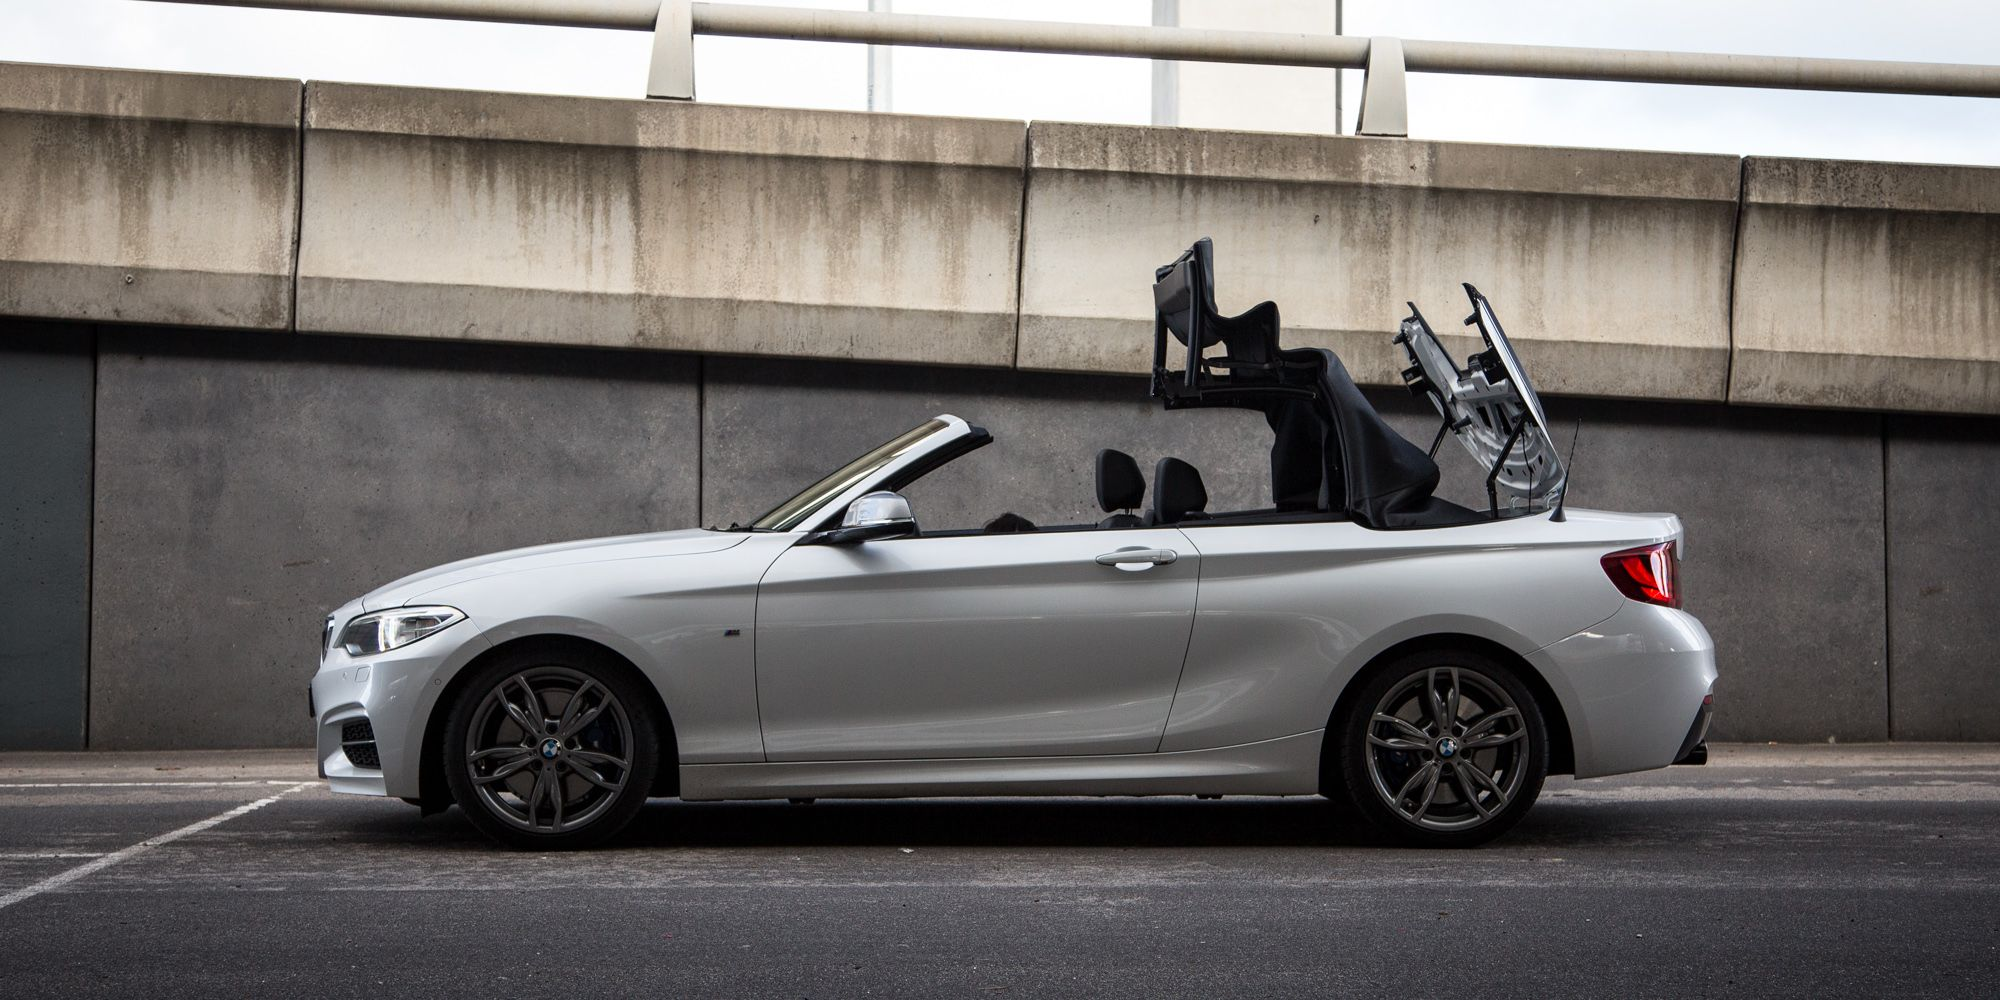 Bmw M235i Convertible Review With Images Bmw Convertible Photo